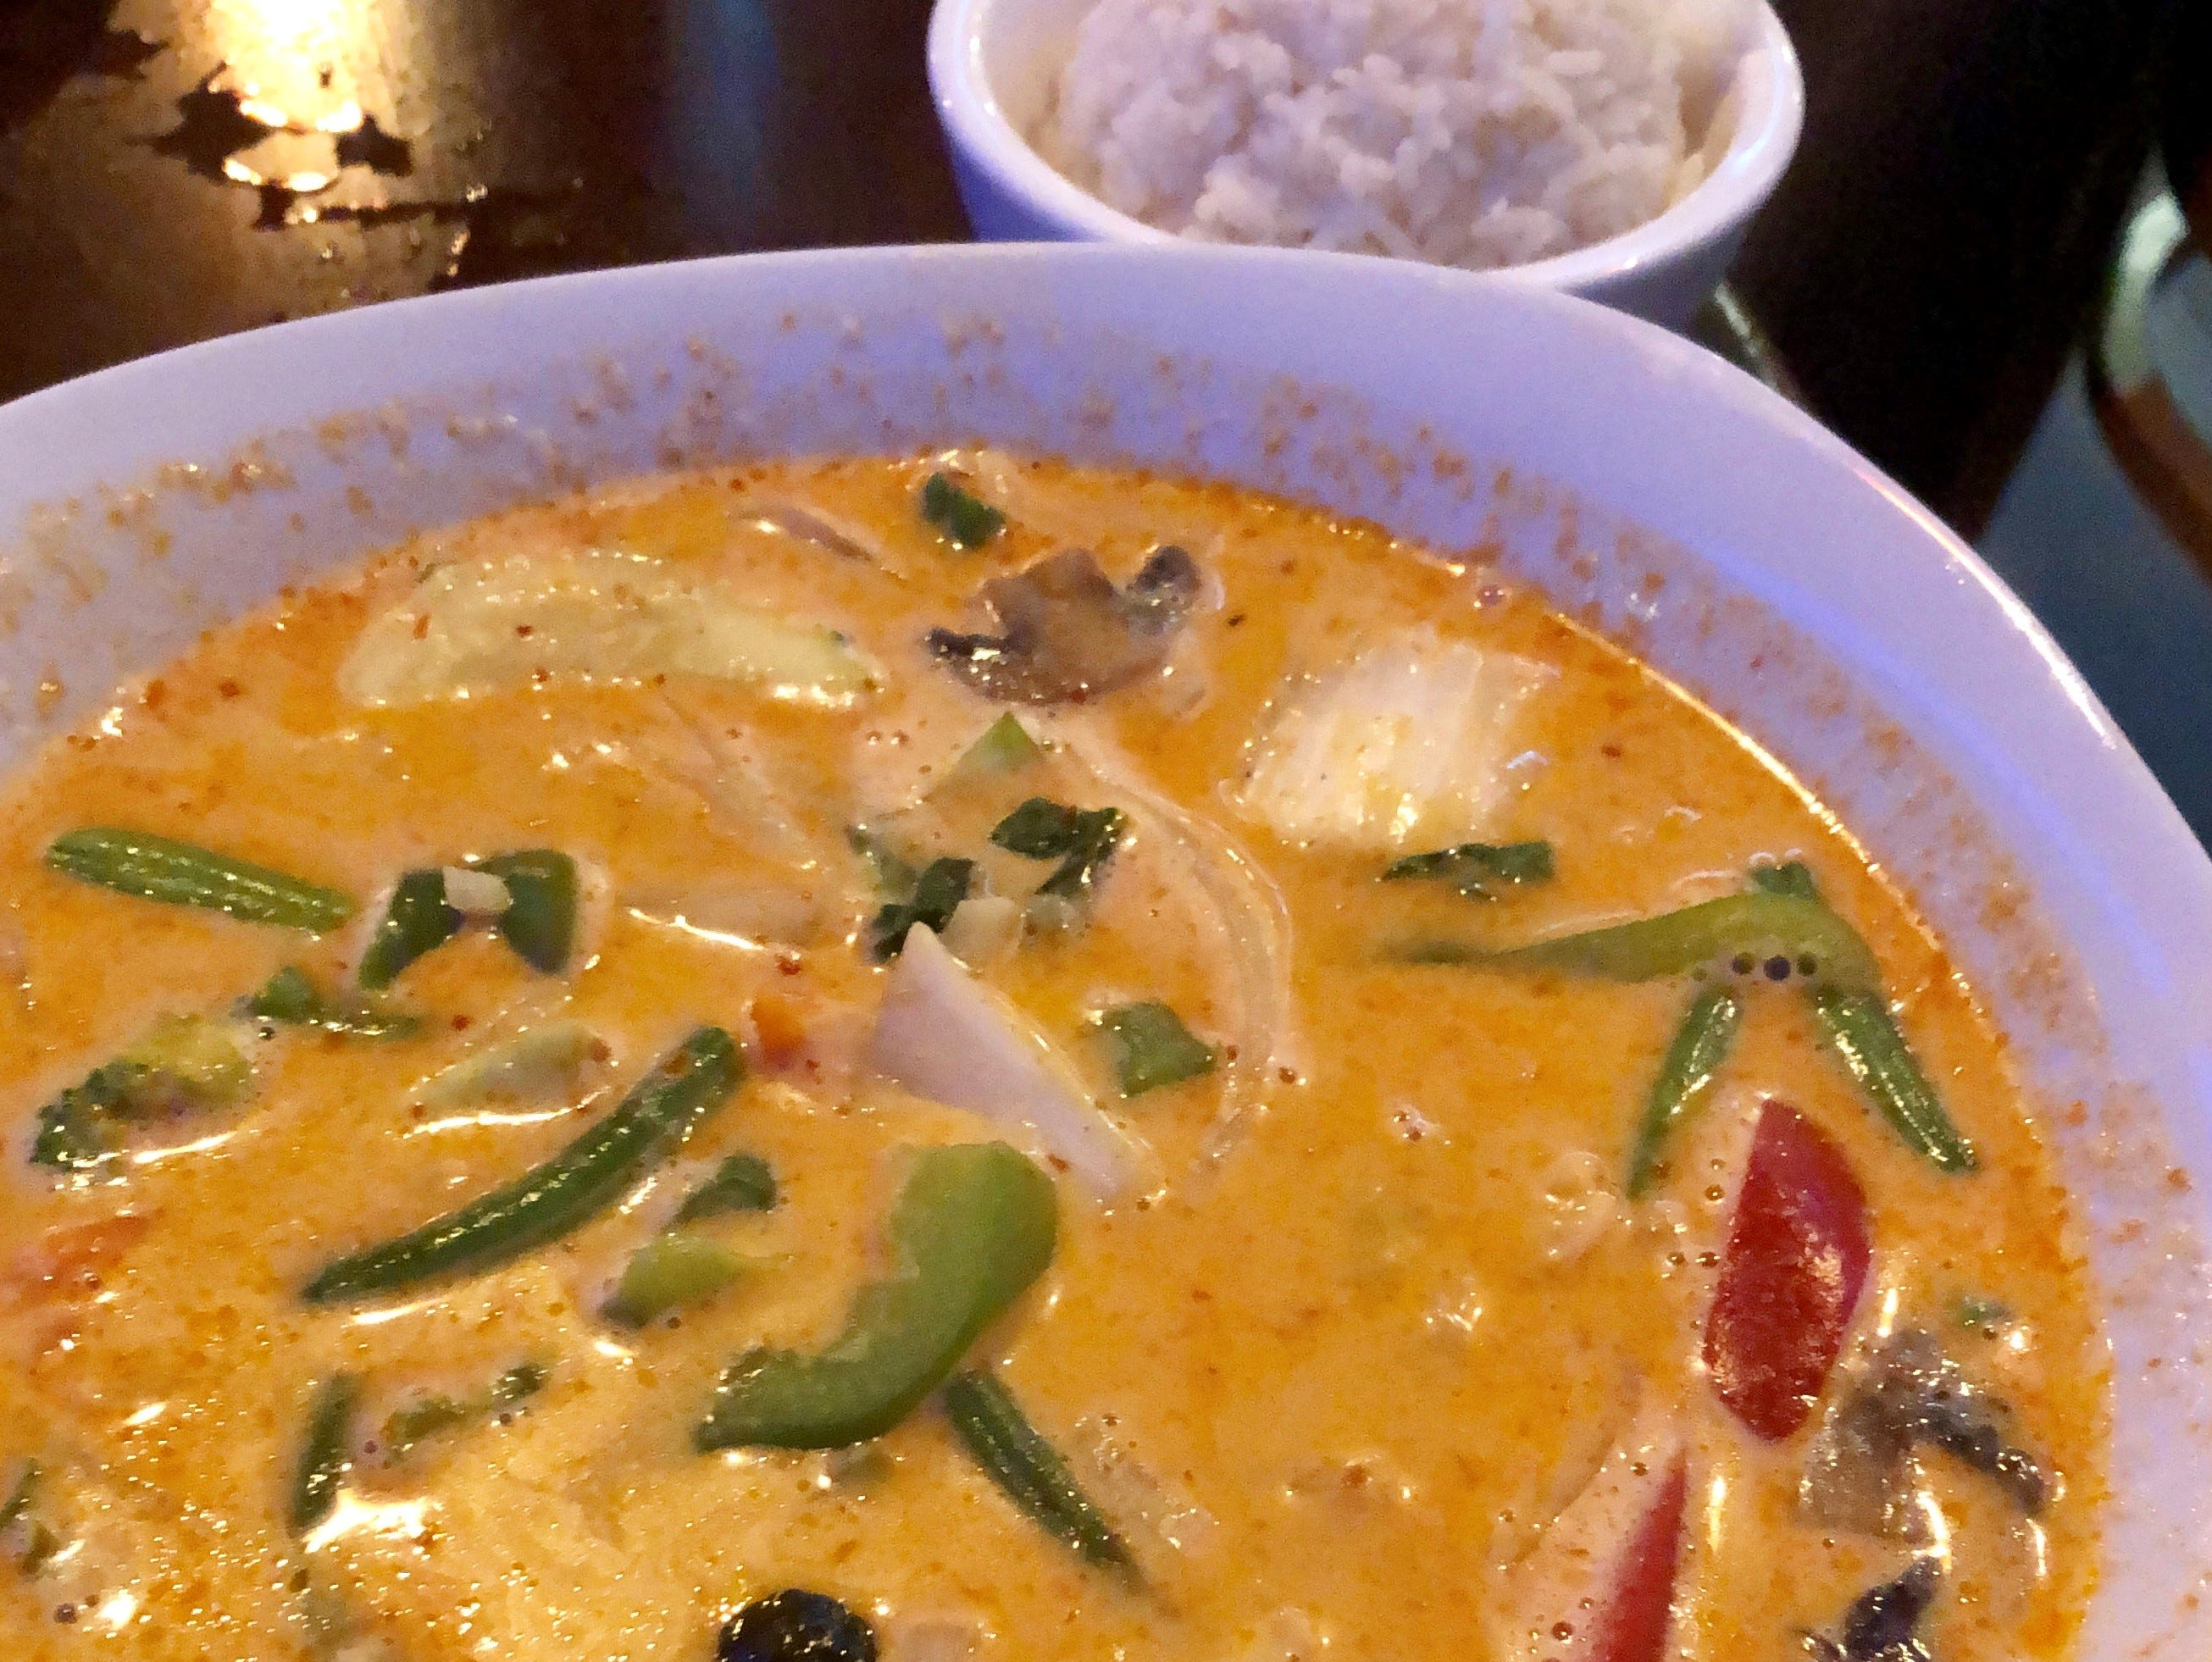 Panang curry with mixed vegetables from Ninja Thai & Sushi Bar in south Fort Myers.